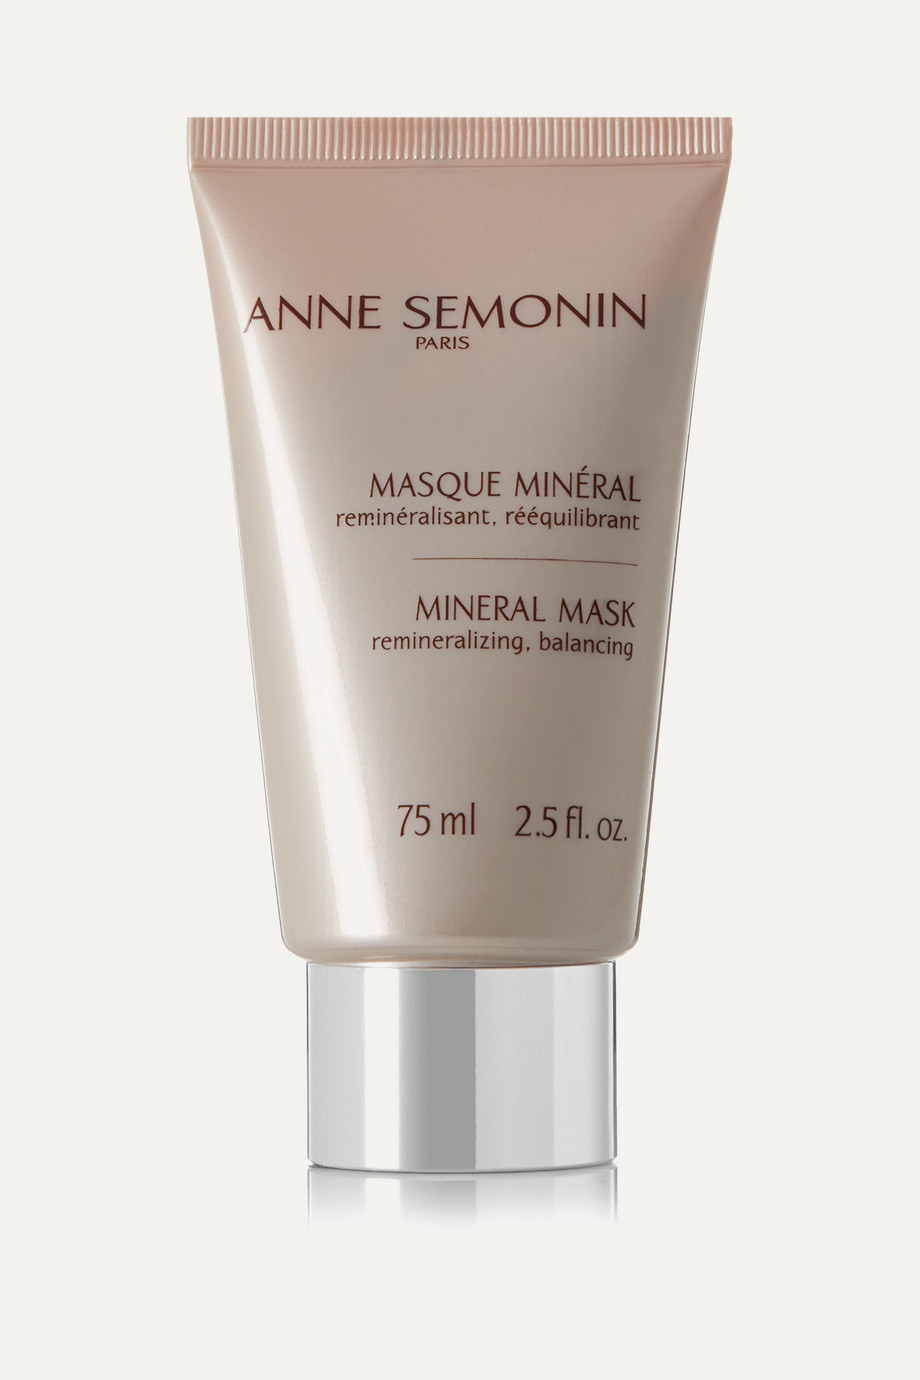 Anne Semonin Mineral Mask, 75ml